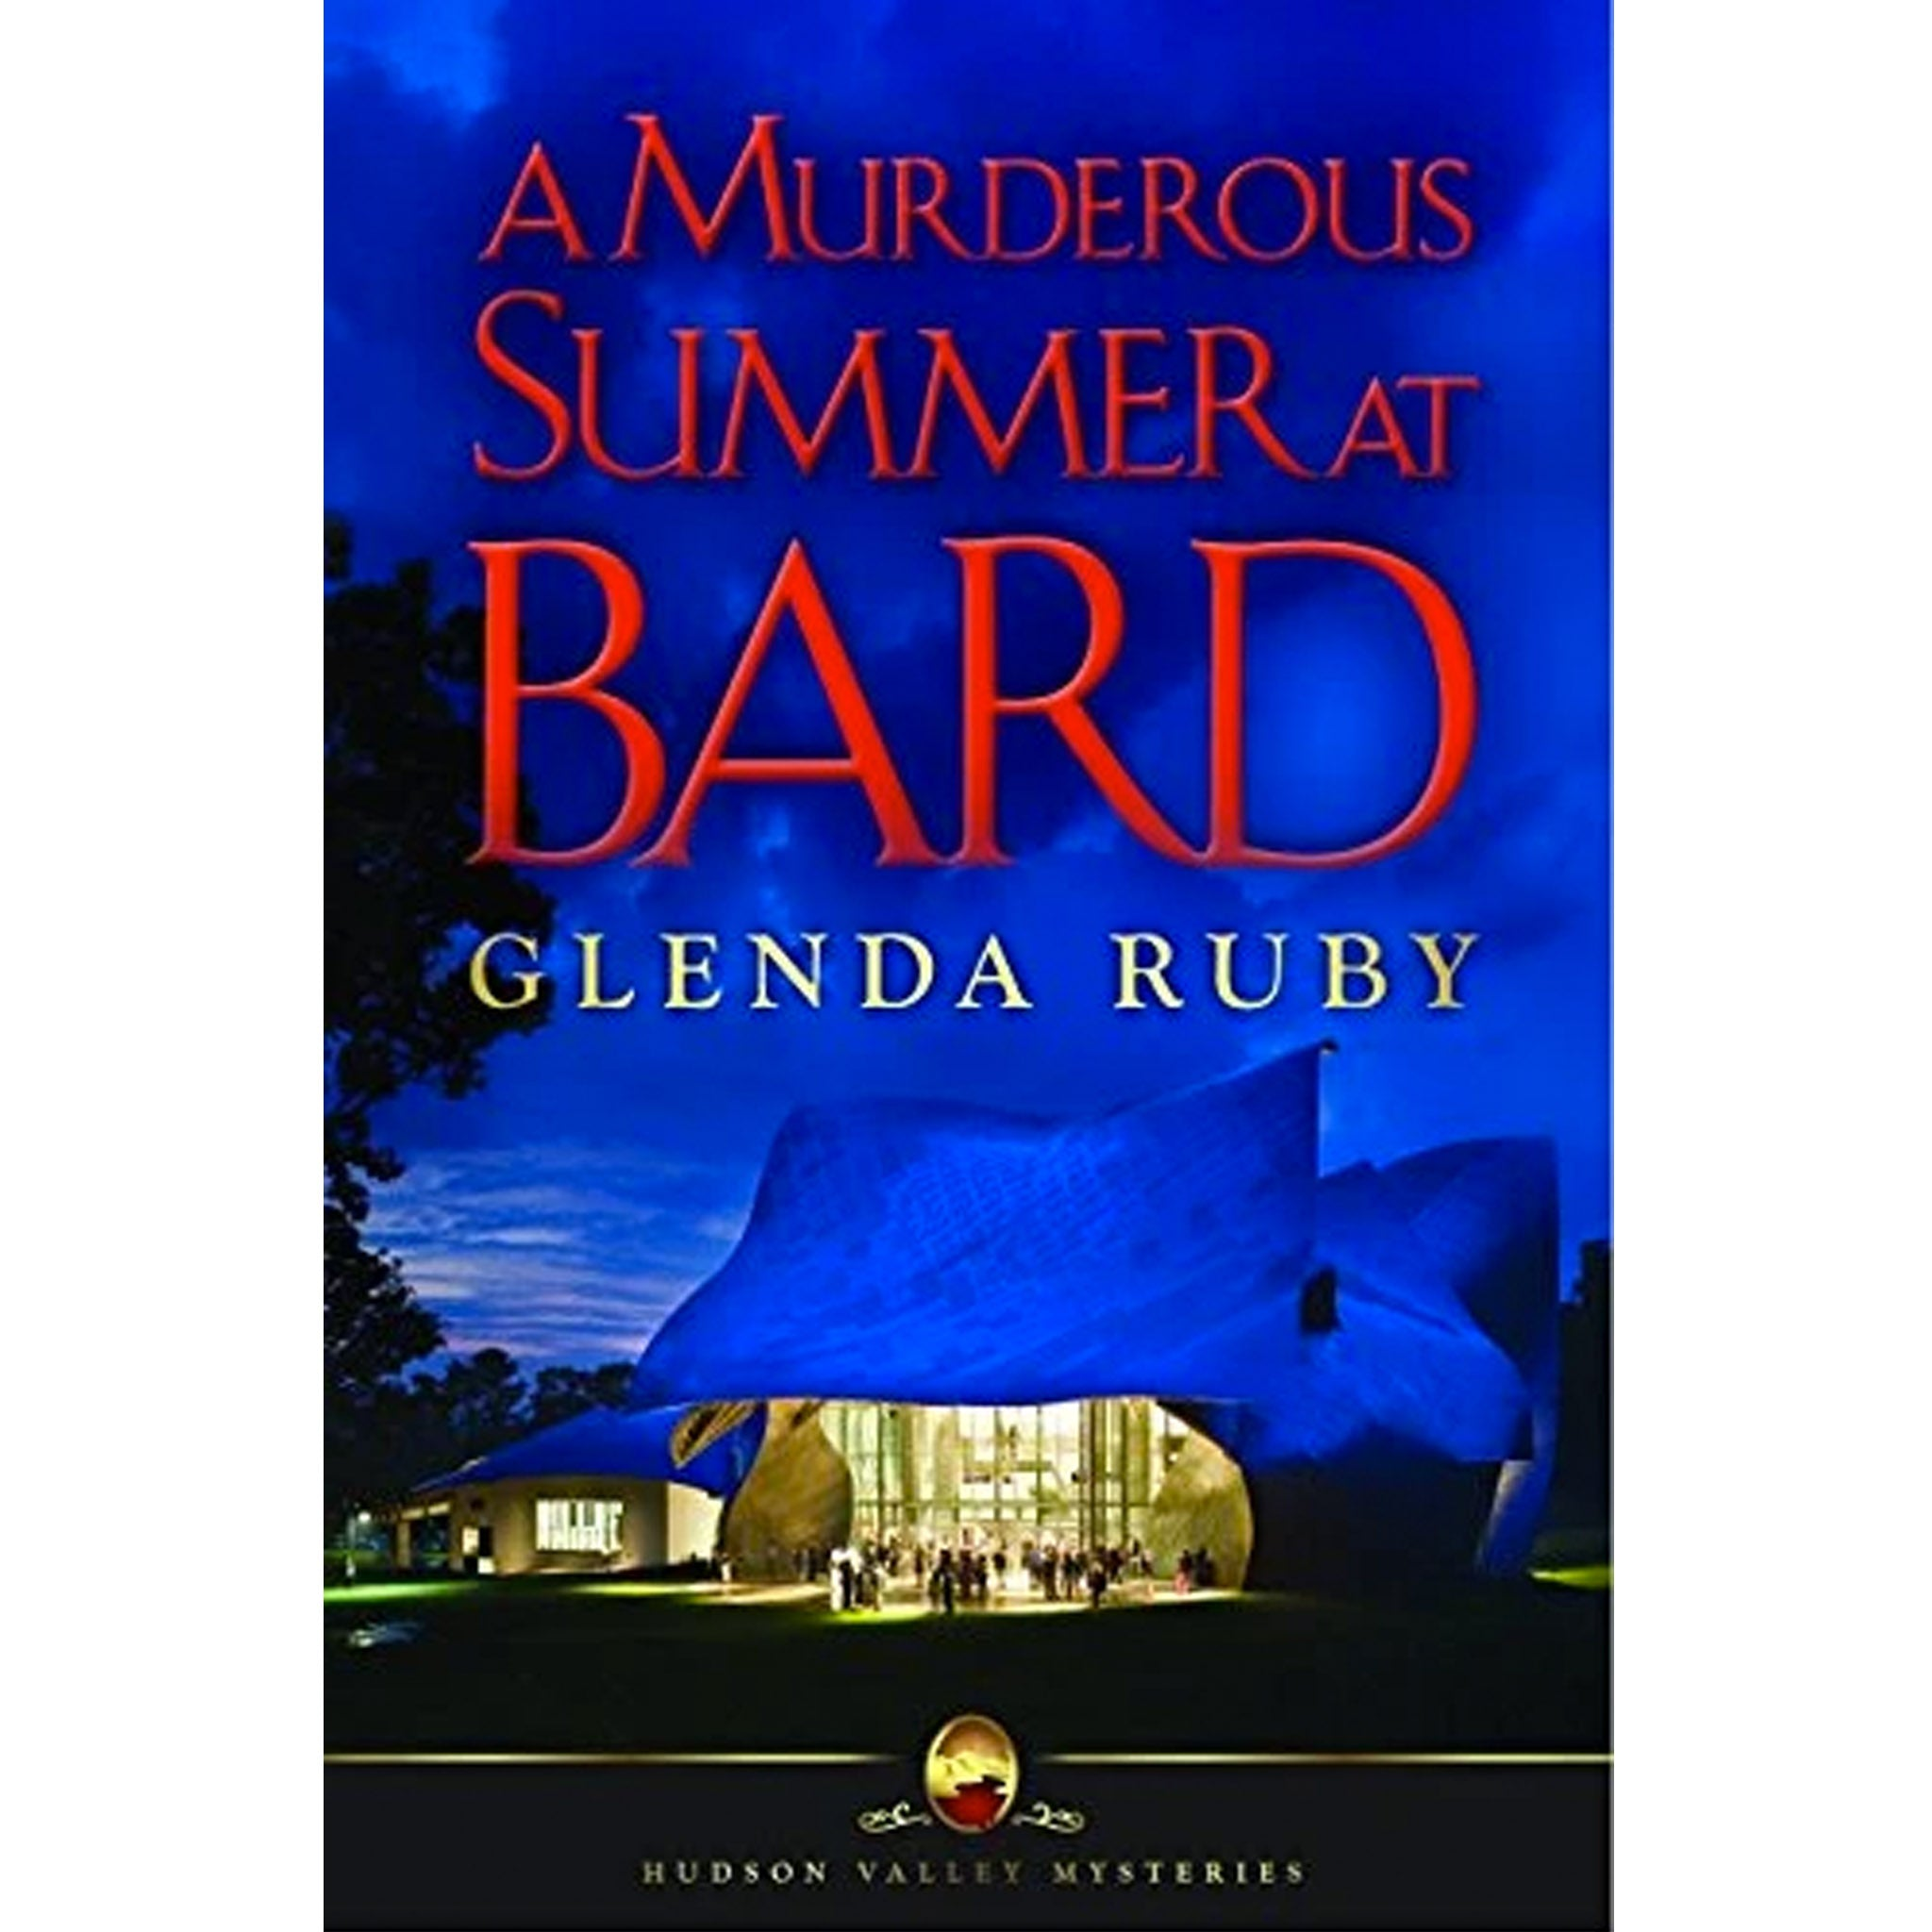 A Murderous Summer at Bard